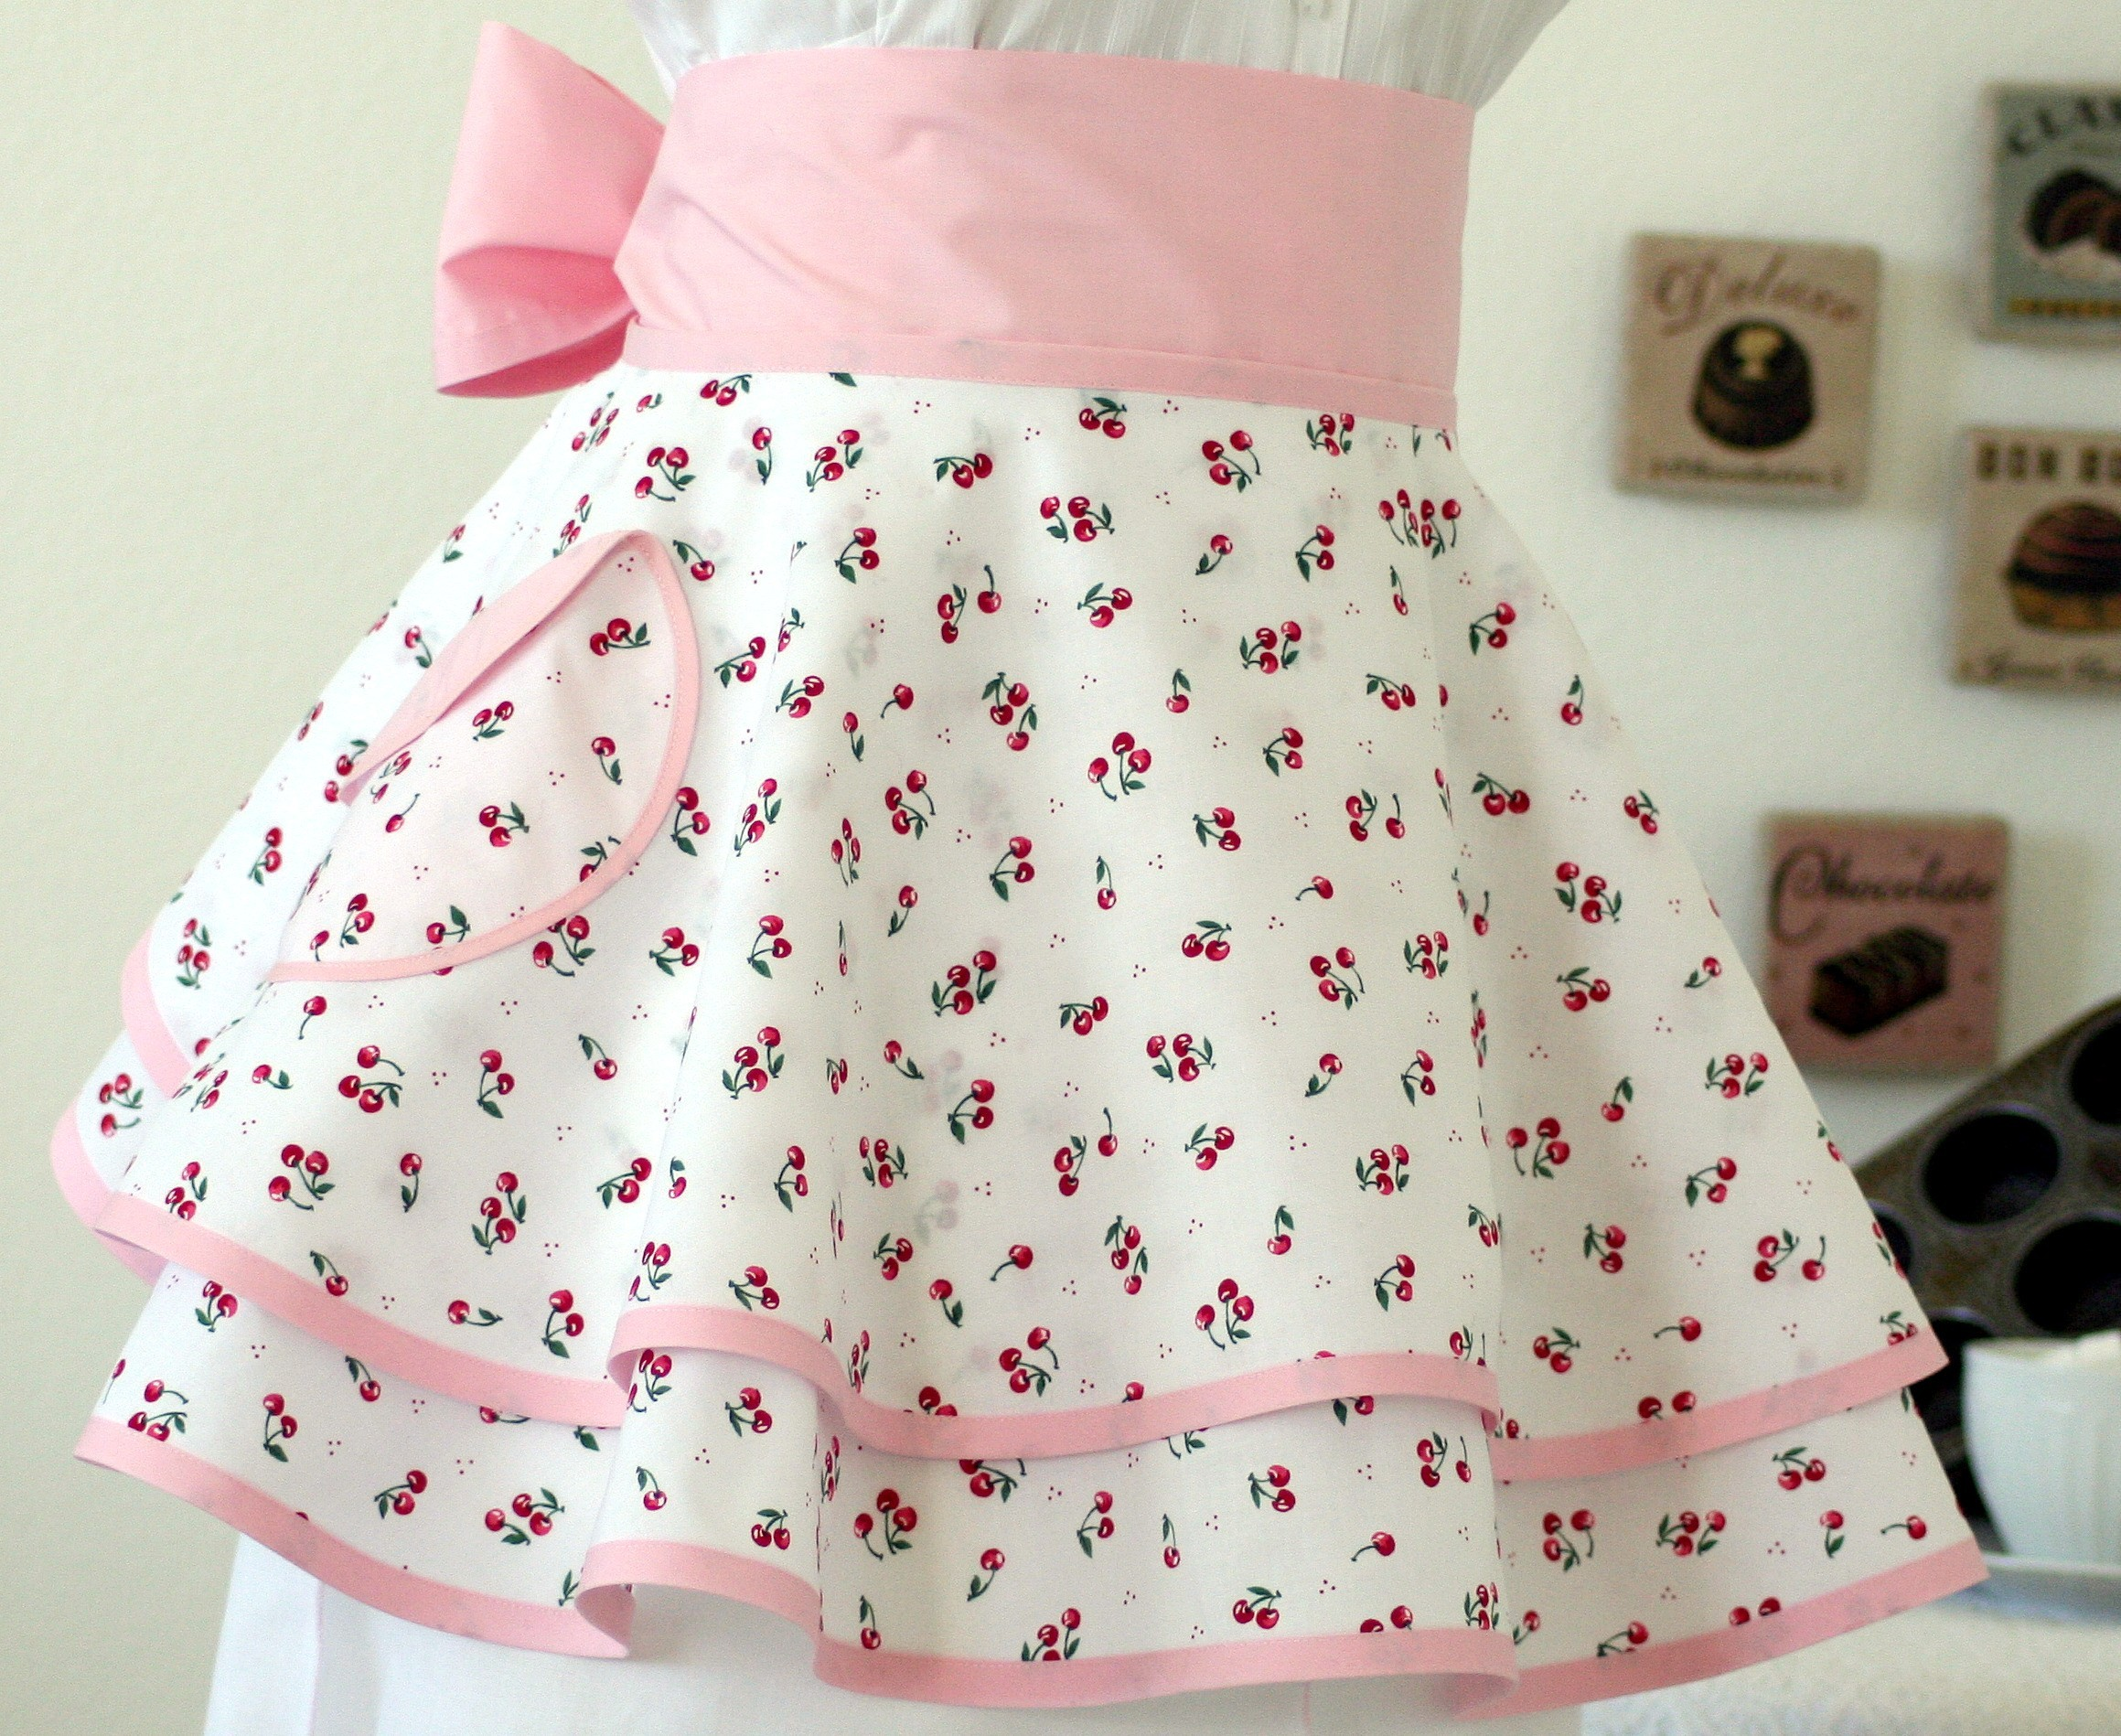 Handmade Gift Ideas: Retro Apron | Craftster.org Blog